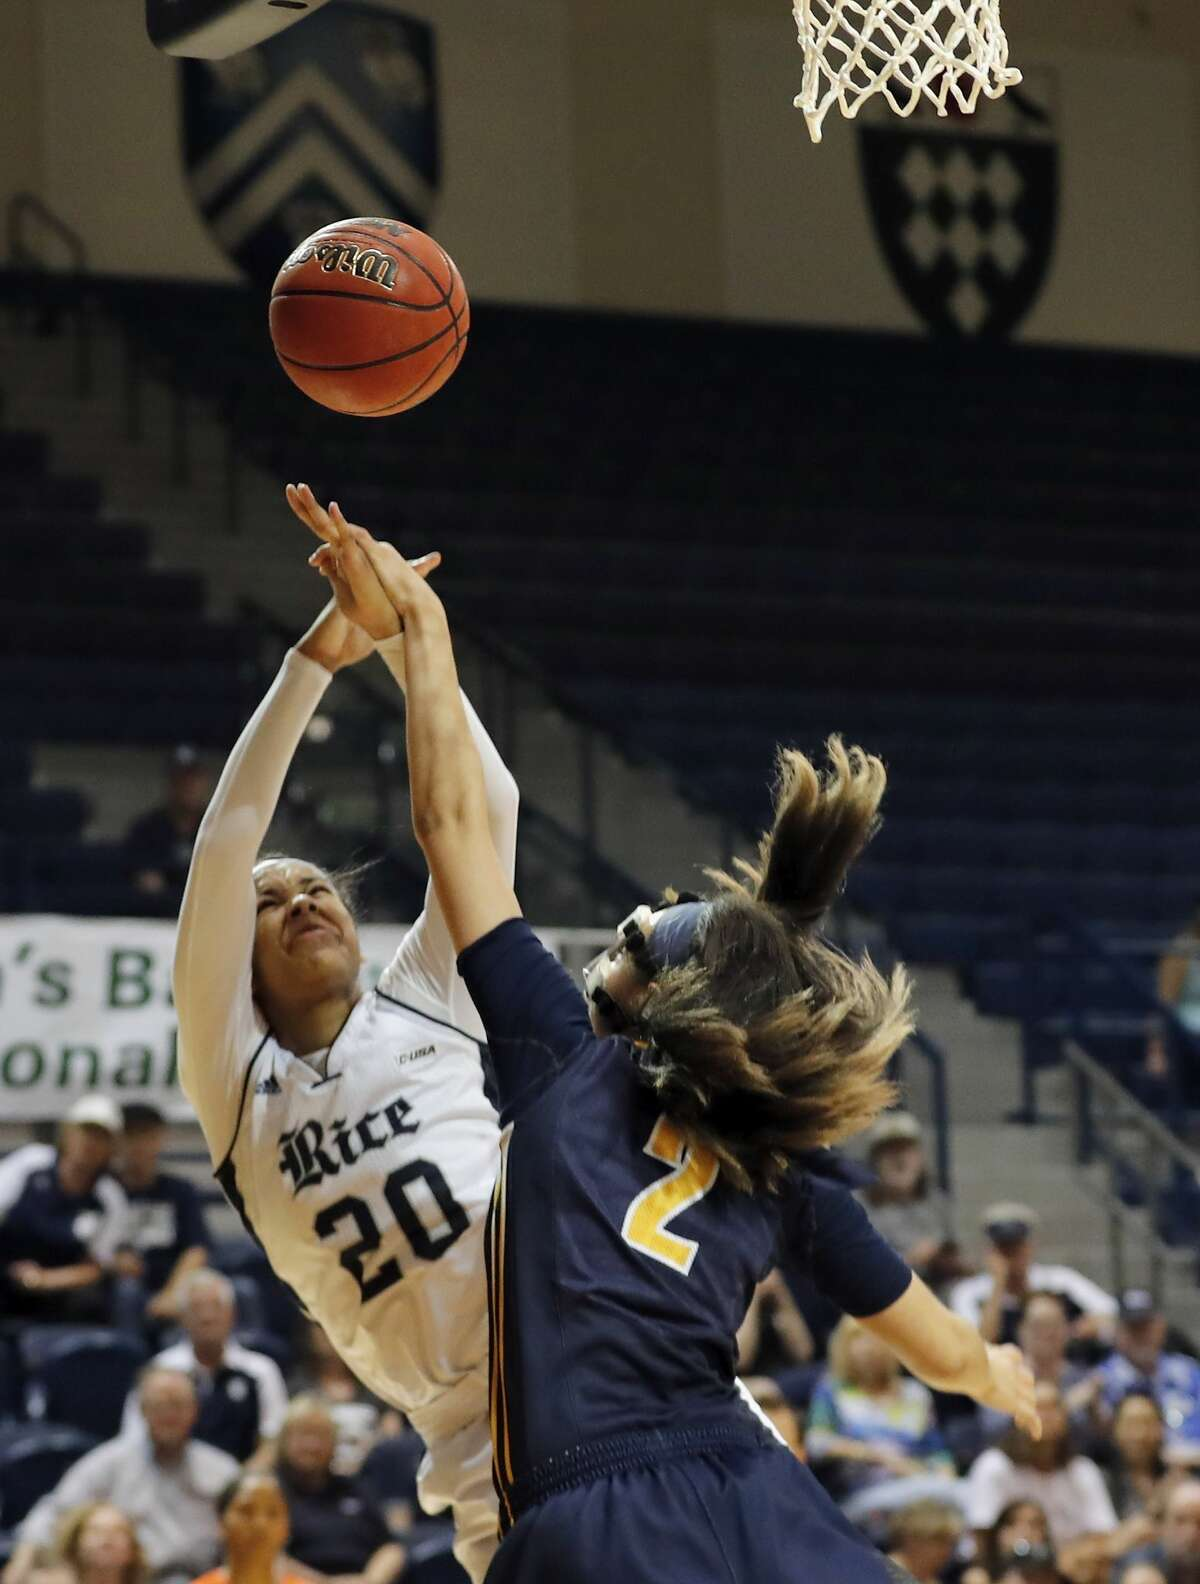 Rice Owls guard Shani Rainey (20) is fouled by North Carolina Greensboro Spartans guard Alexus Willey (2) in the second half during the Women's Basketball Invitational Championship Game between the UNC-Greensboro Spartans and the Rice Owls at Tudor Field House in Houston, TX on Sunday, March 26, 2017.